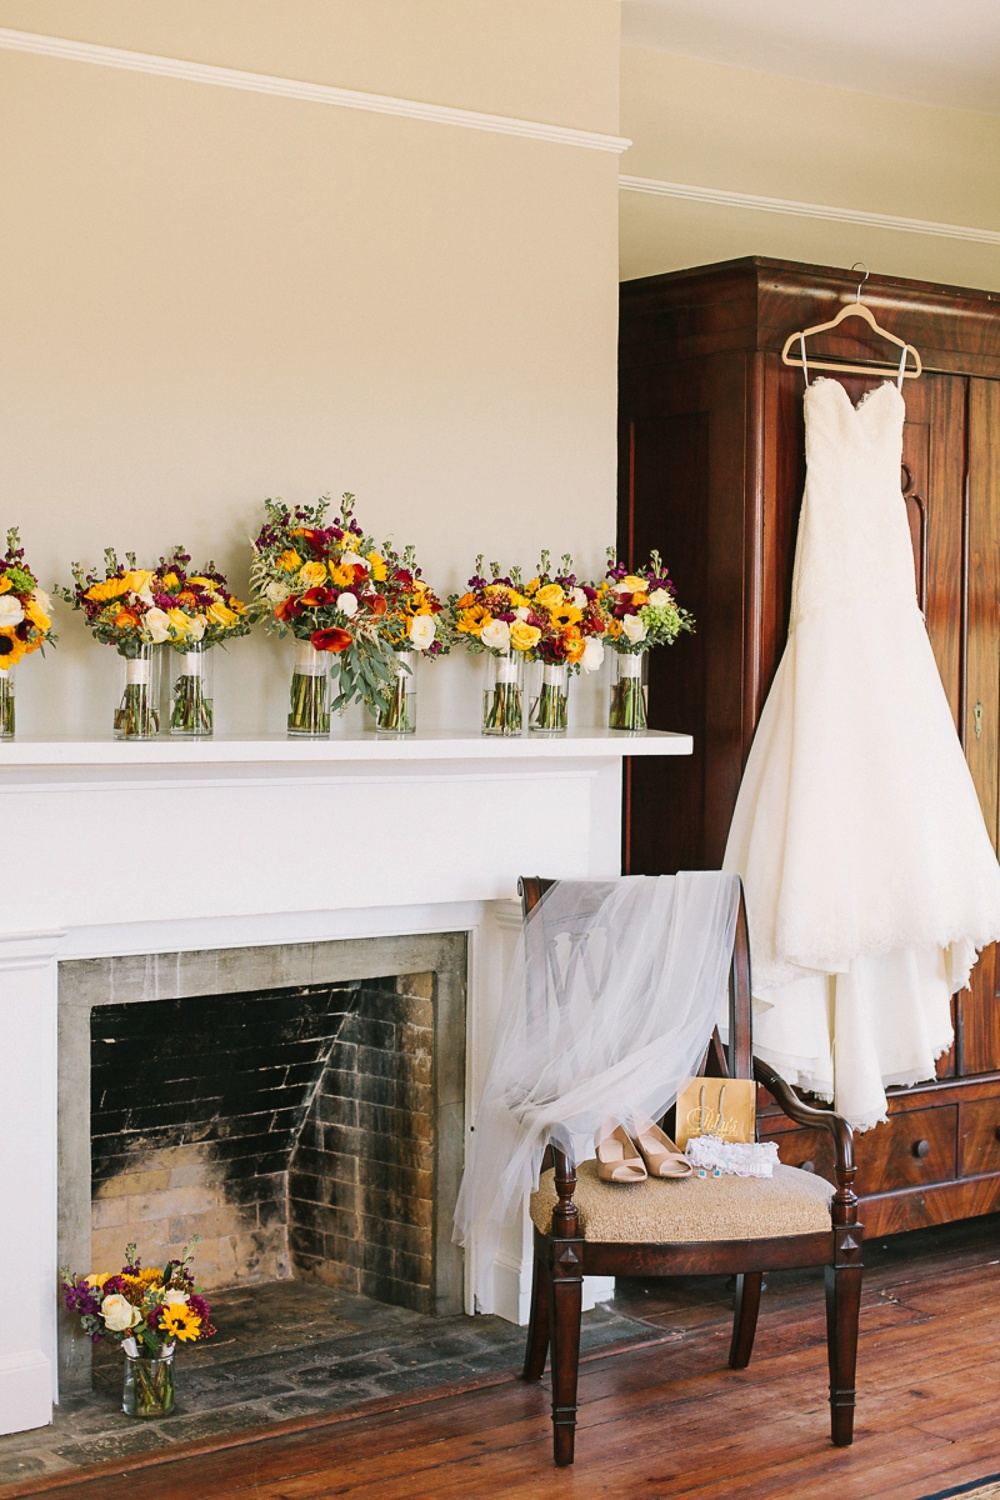 Lindsey_A_Miller_photography_charleston_mcleod_plantation_wedding_row_of_oaks_southern_classic_fall_spanish_moss_historic_home_014.jpg